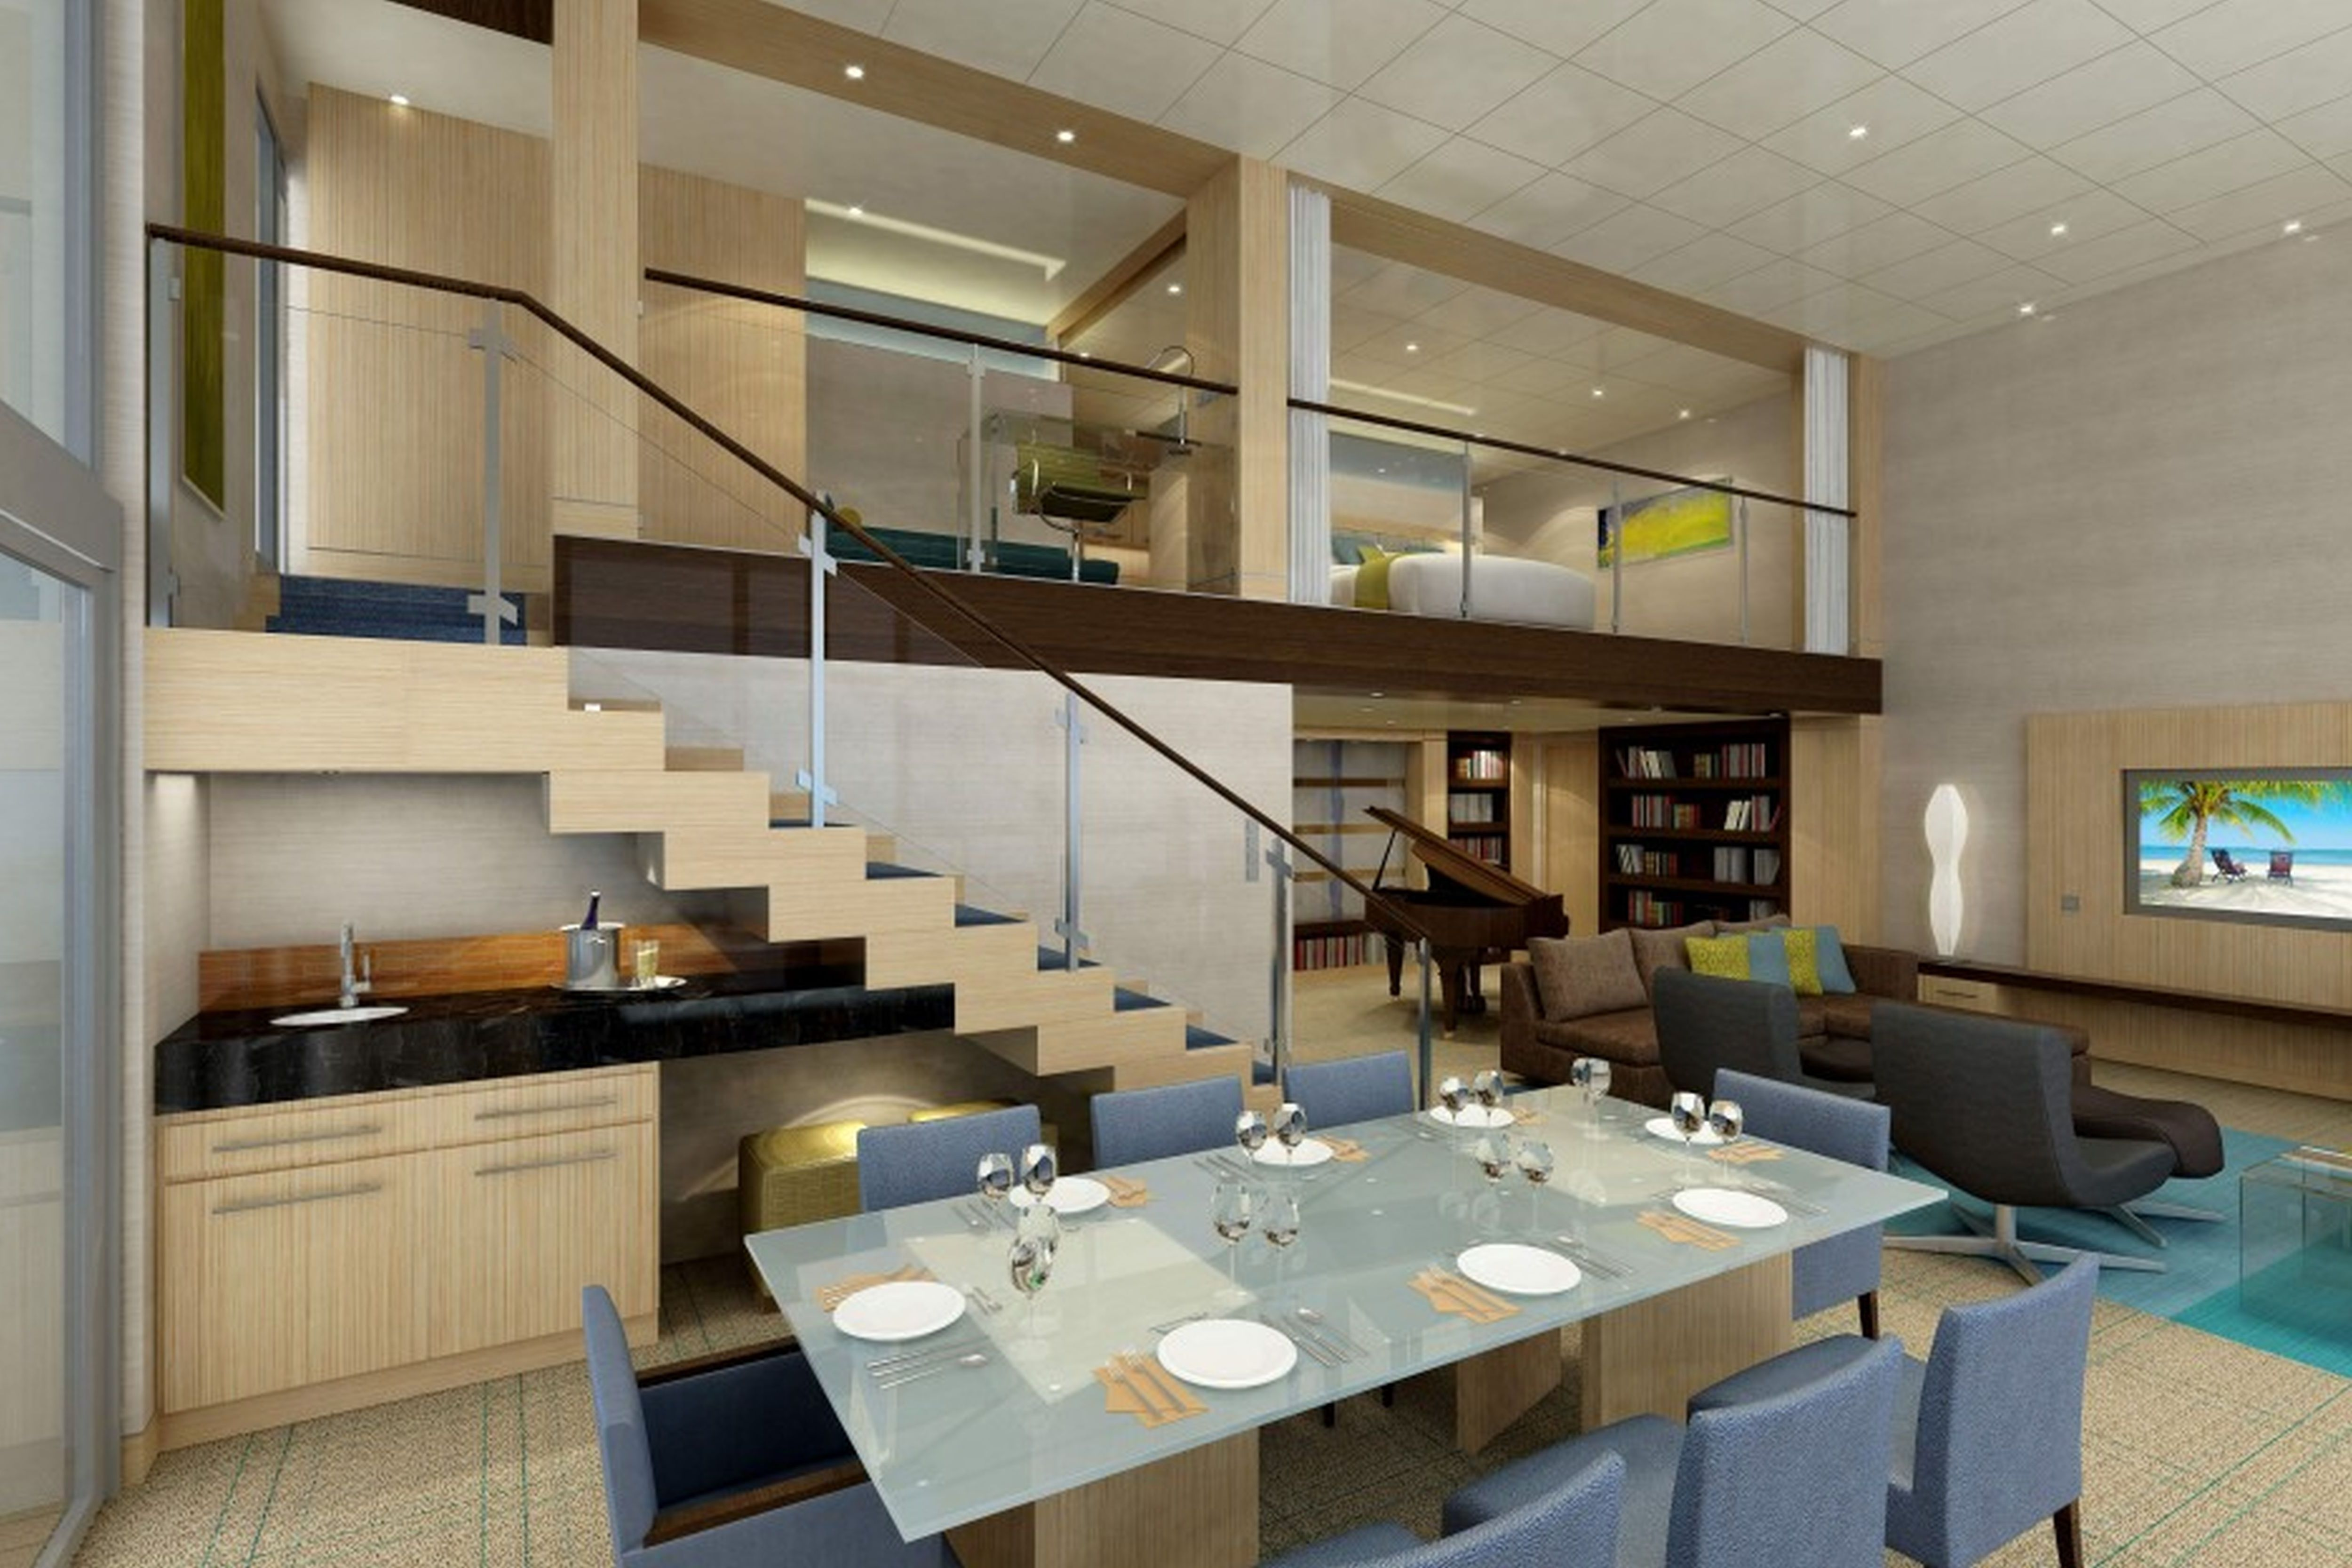 1 BHK Flats In Kolhapur |3 BHK Flats In Kolhapur | 3 BHK Apartments For  Sale In Kolhapur | Gruhkhoj | Kolhapur | Pinterest | Apartments, Decking  And Real ...